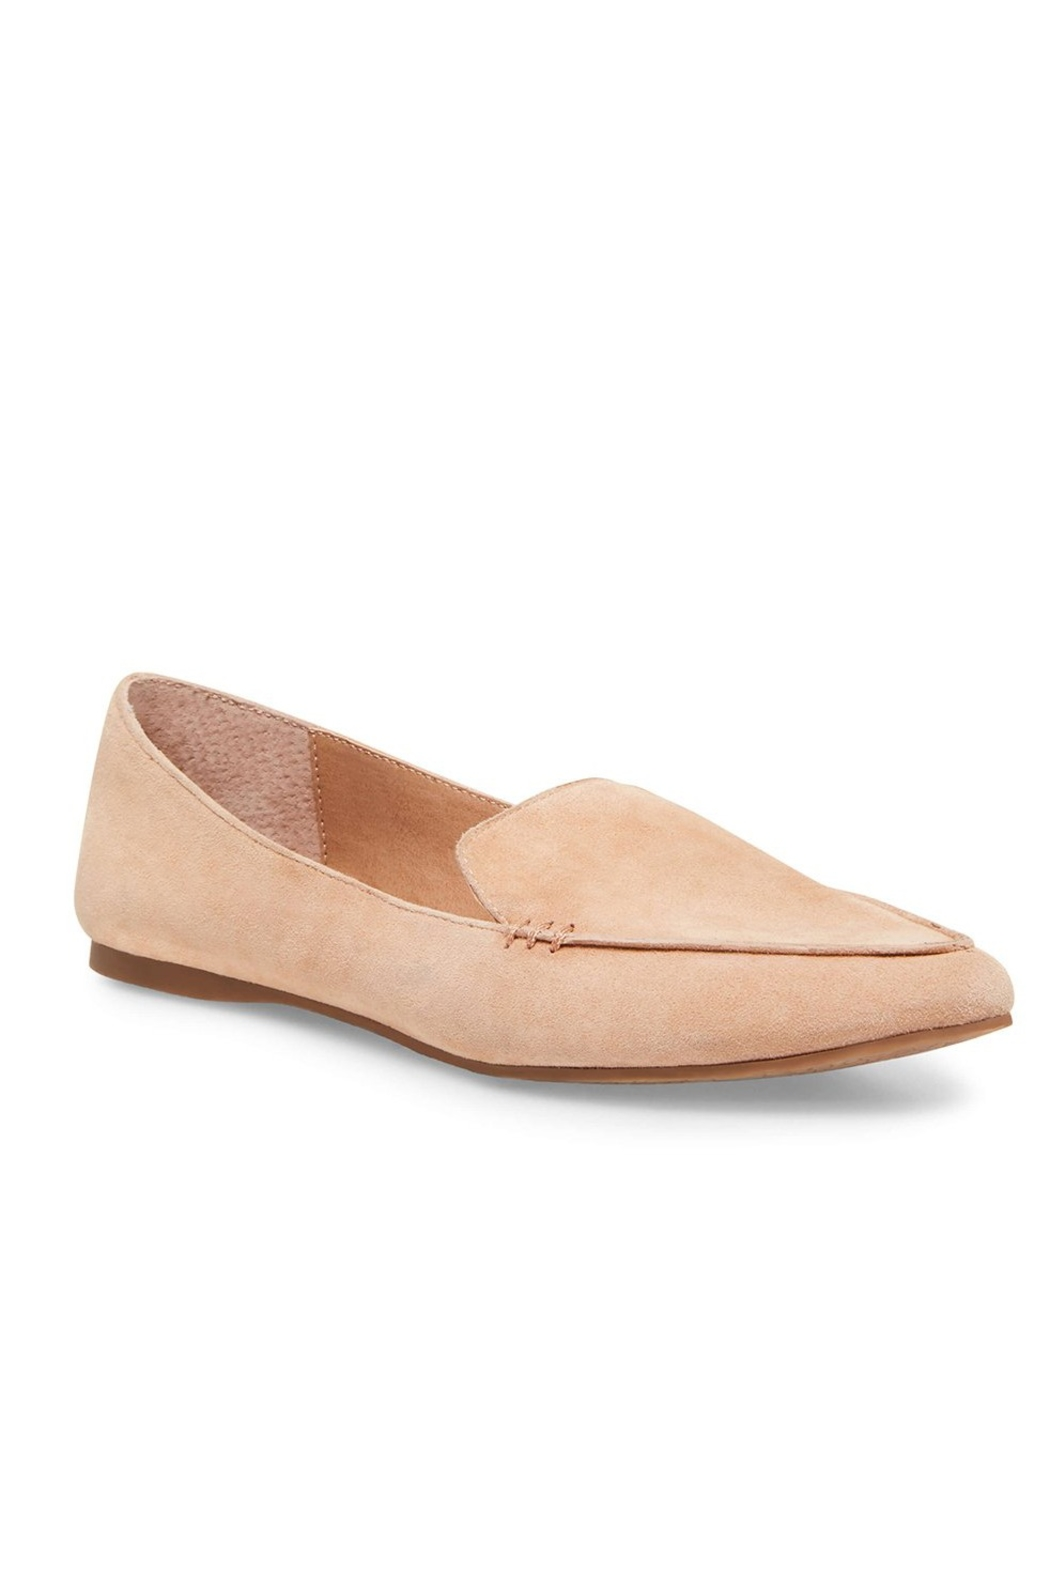 Steve Madden Feather Pointed Flat - Front Cropped Image